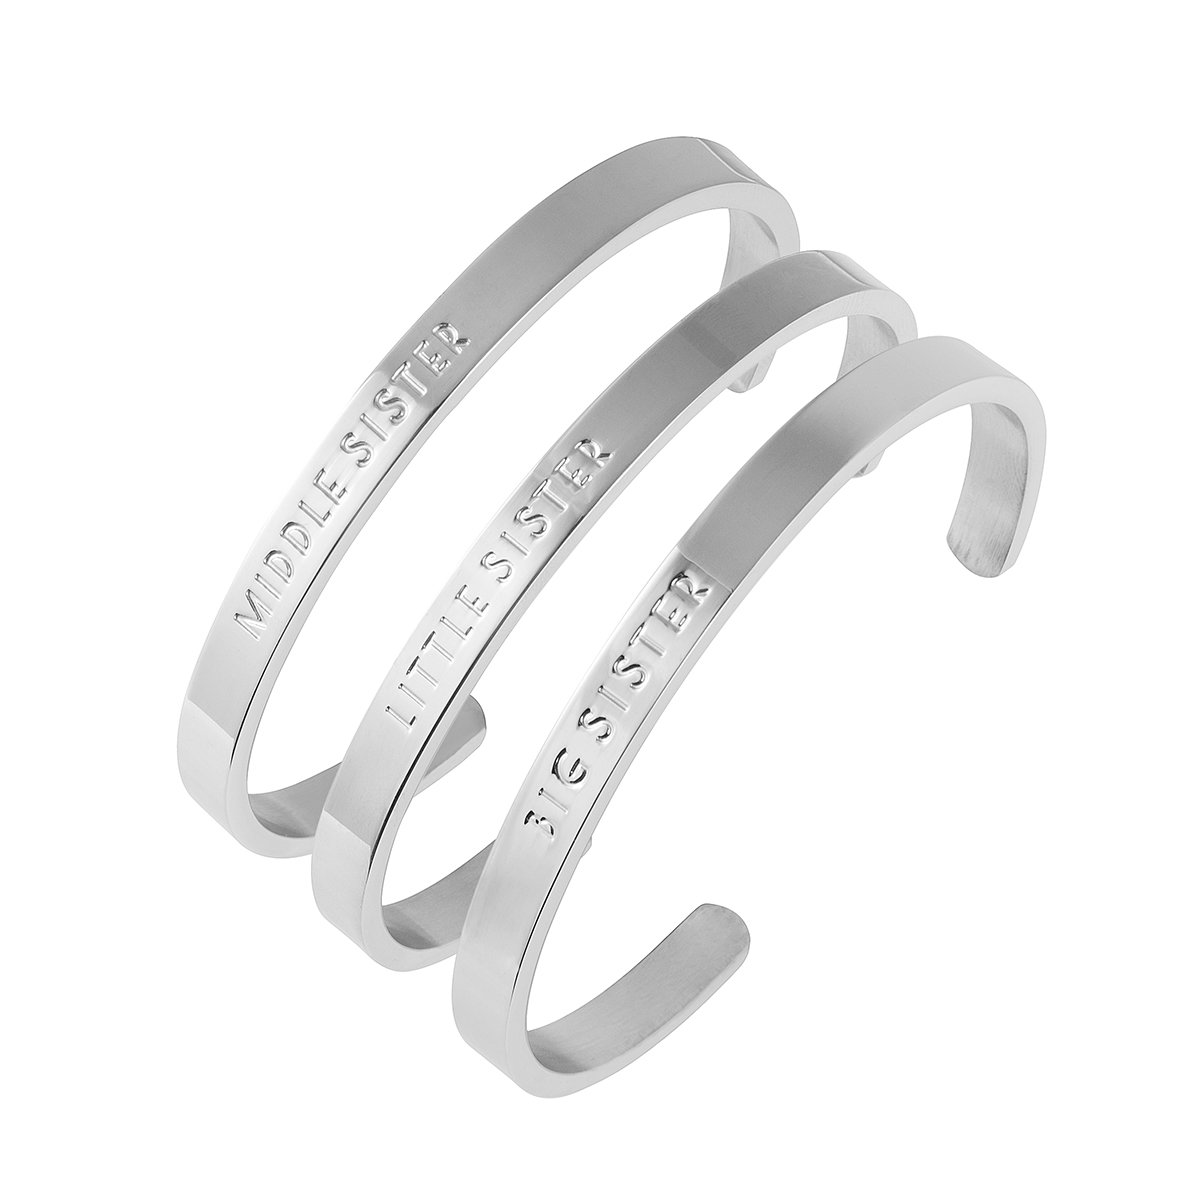 omodofo Sisters Cuff Bangle 3 Set Big Sis Middle Sis Little Sis Personalised Bracelet Family Friend Gift Jewelry for Girls OMO-SIS-3R